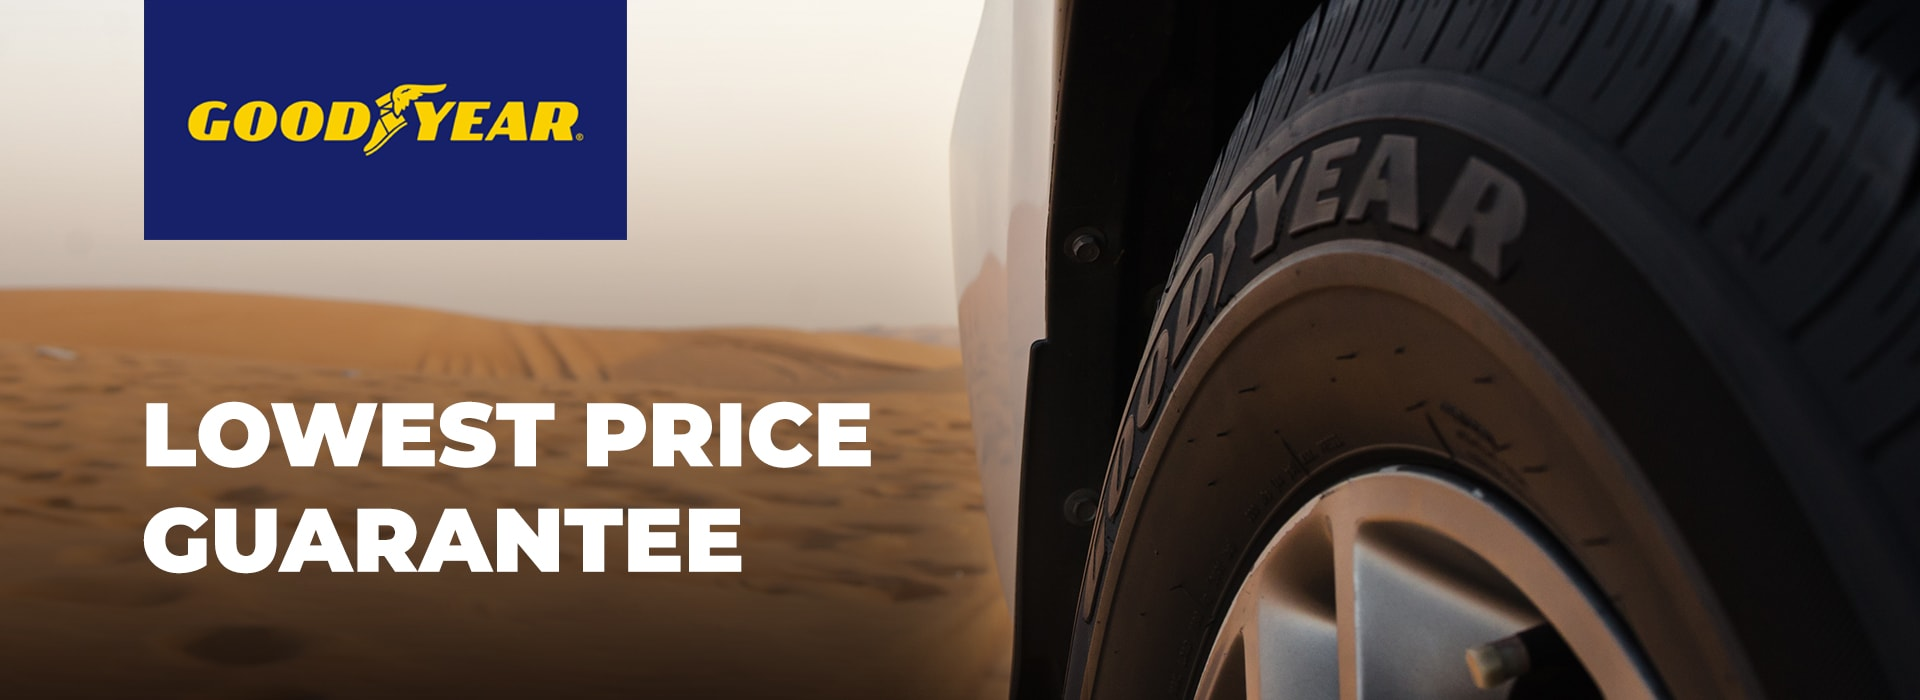 Goodyear Lowest Price Guarantee